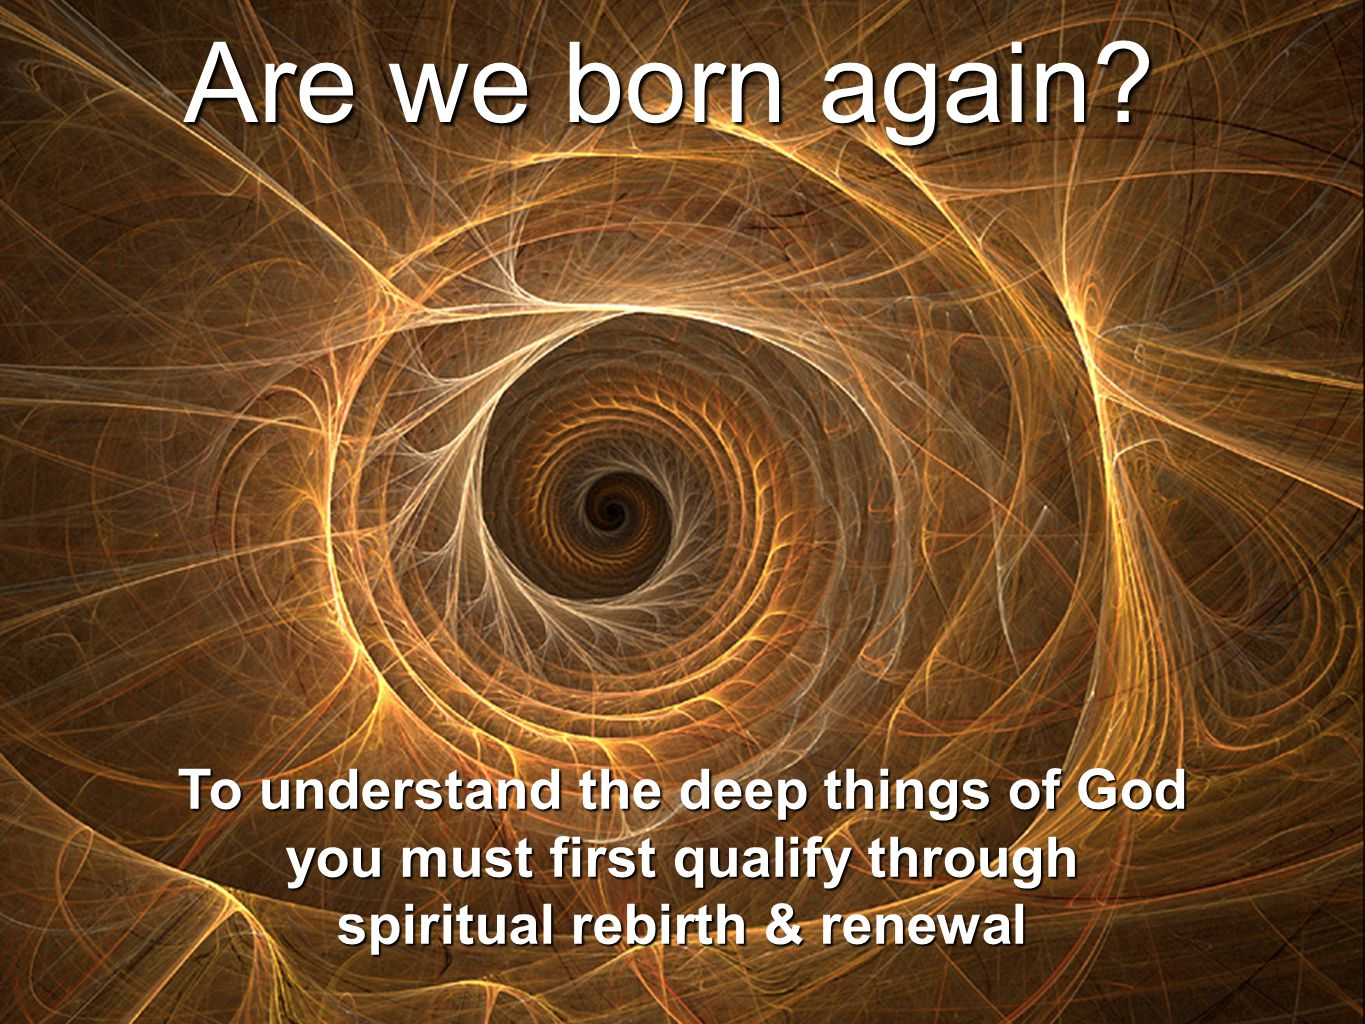 Are we born again To understand the deep things of God